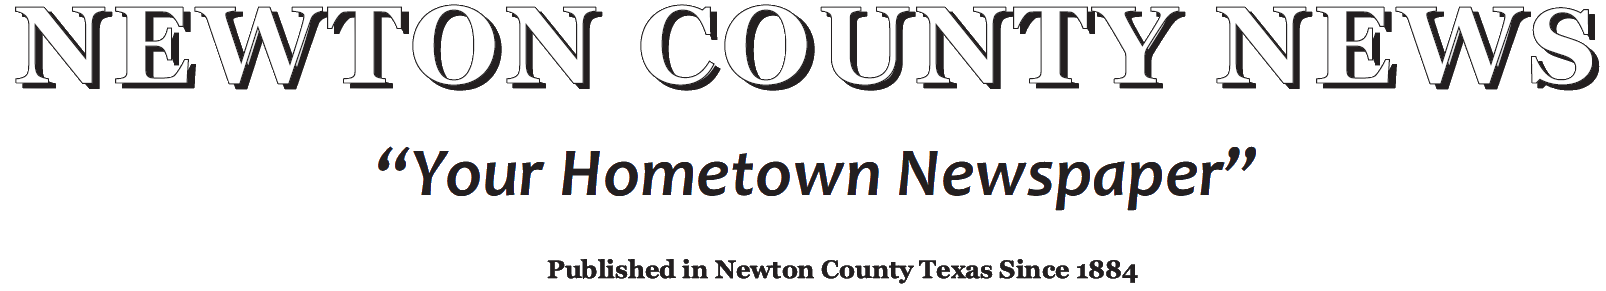 The Newton County News